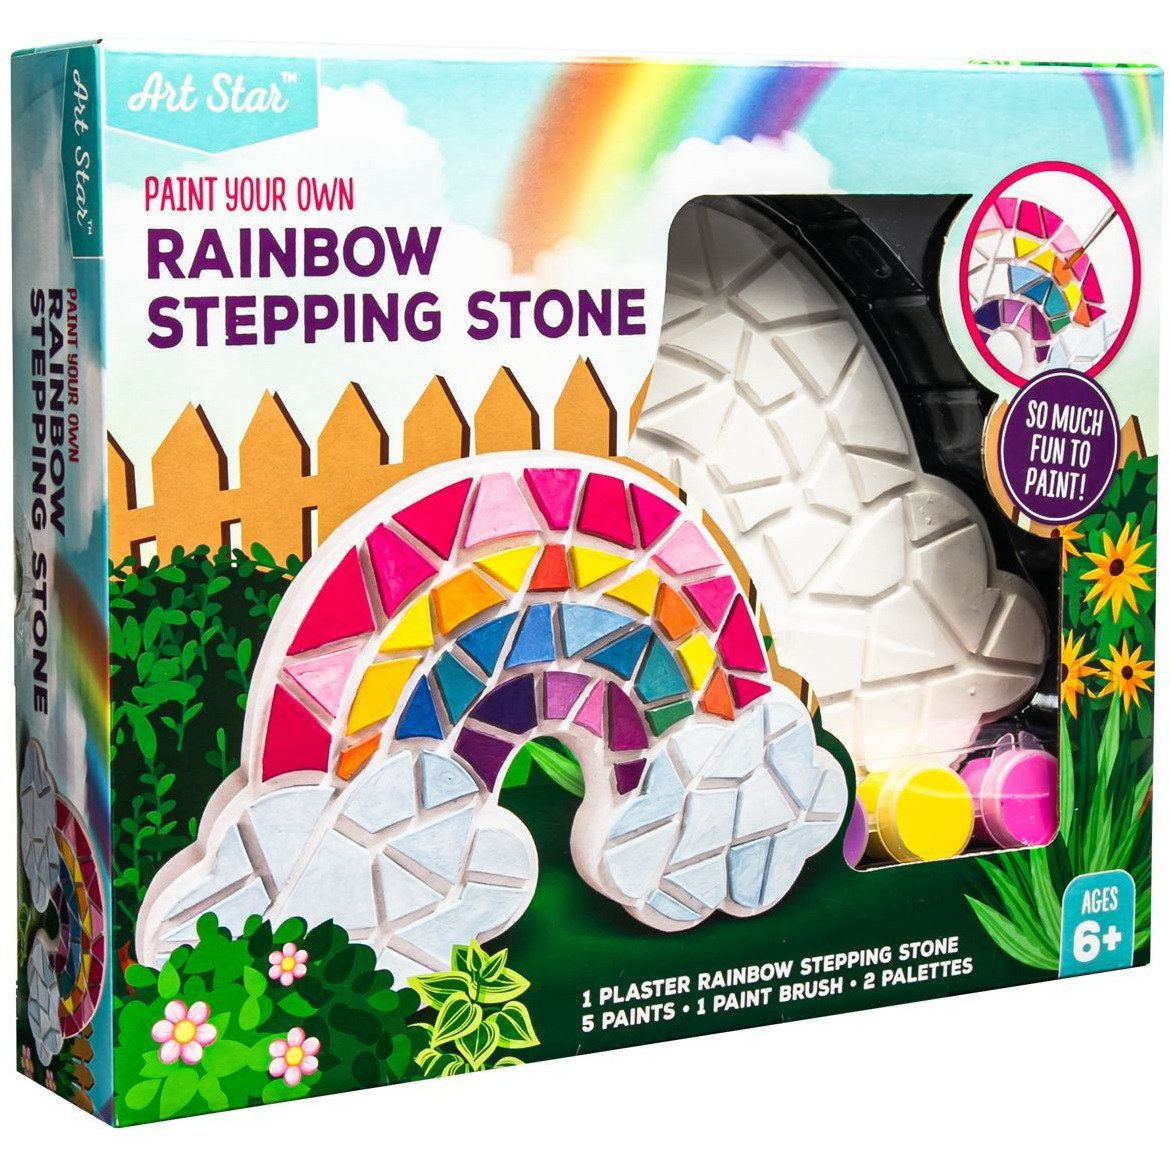 Image of Artstar Decorate Your Own Stepping Stone Rainbow